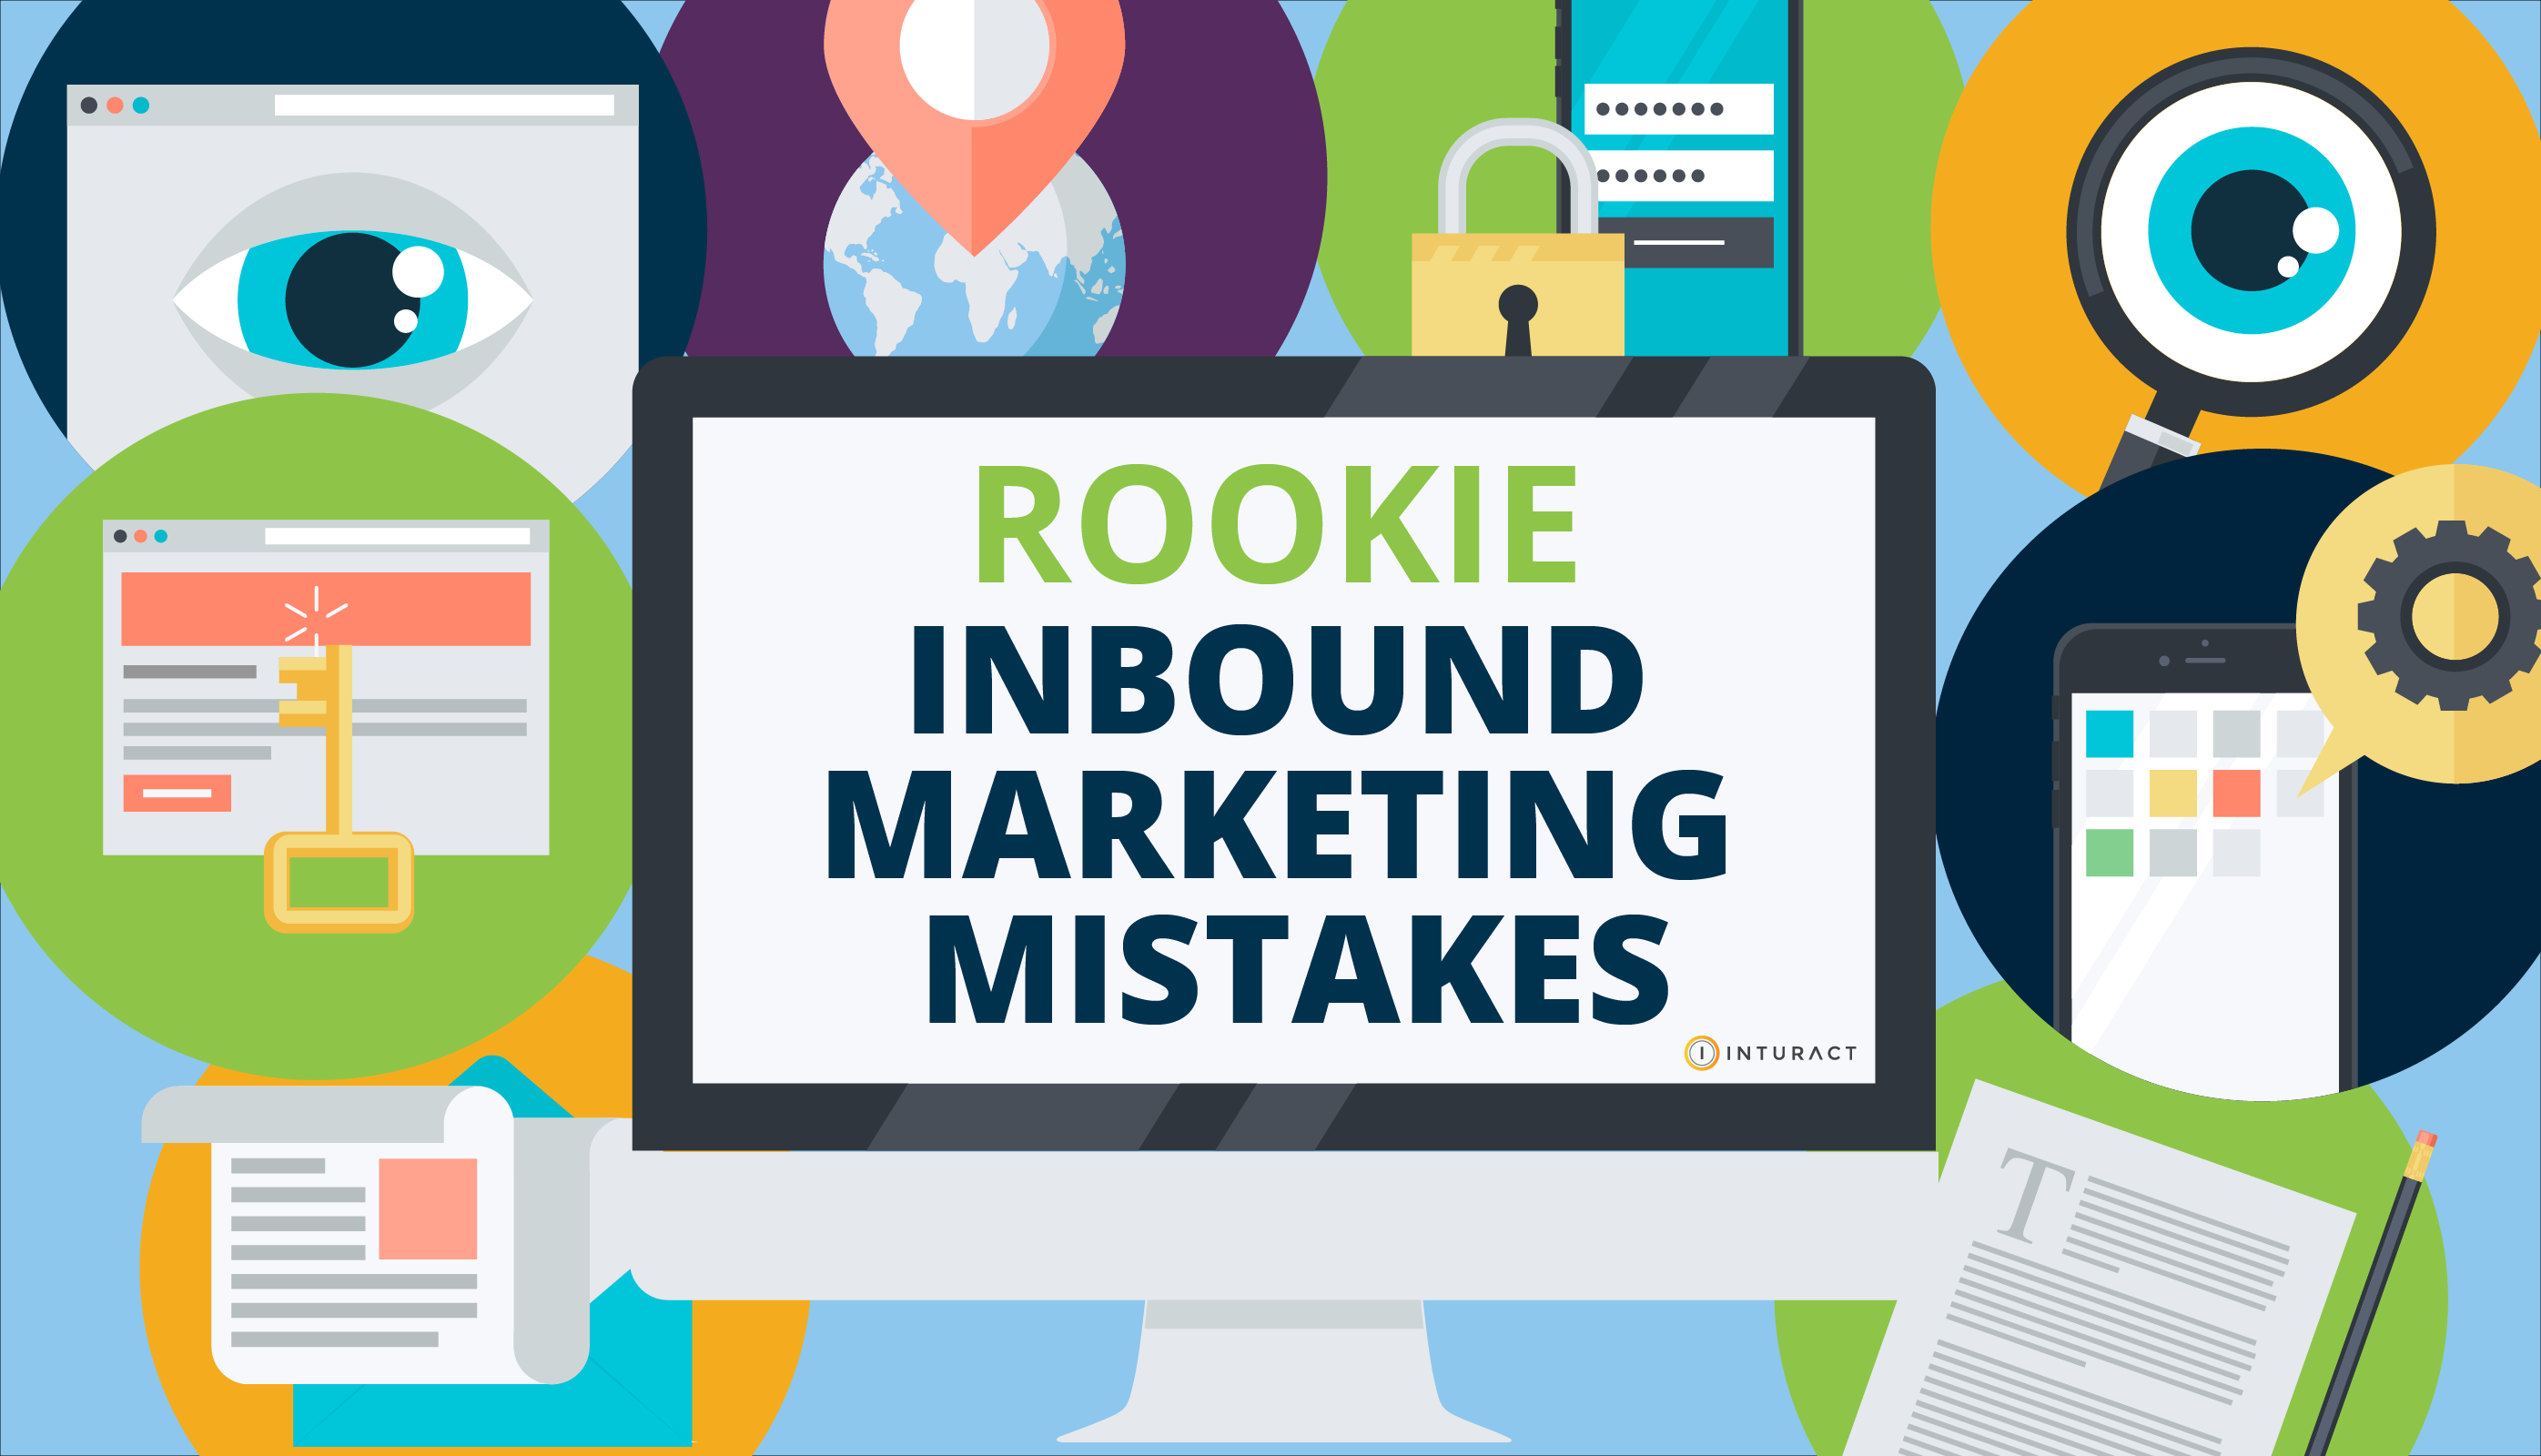 Don't Make These Rookie Inbound Marketing Mistakes